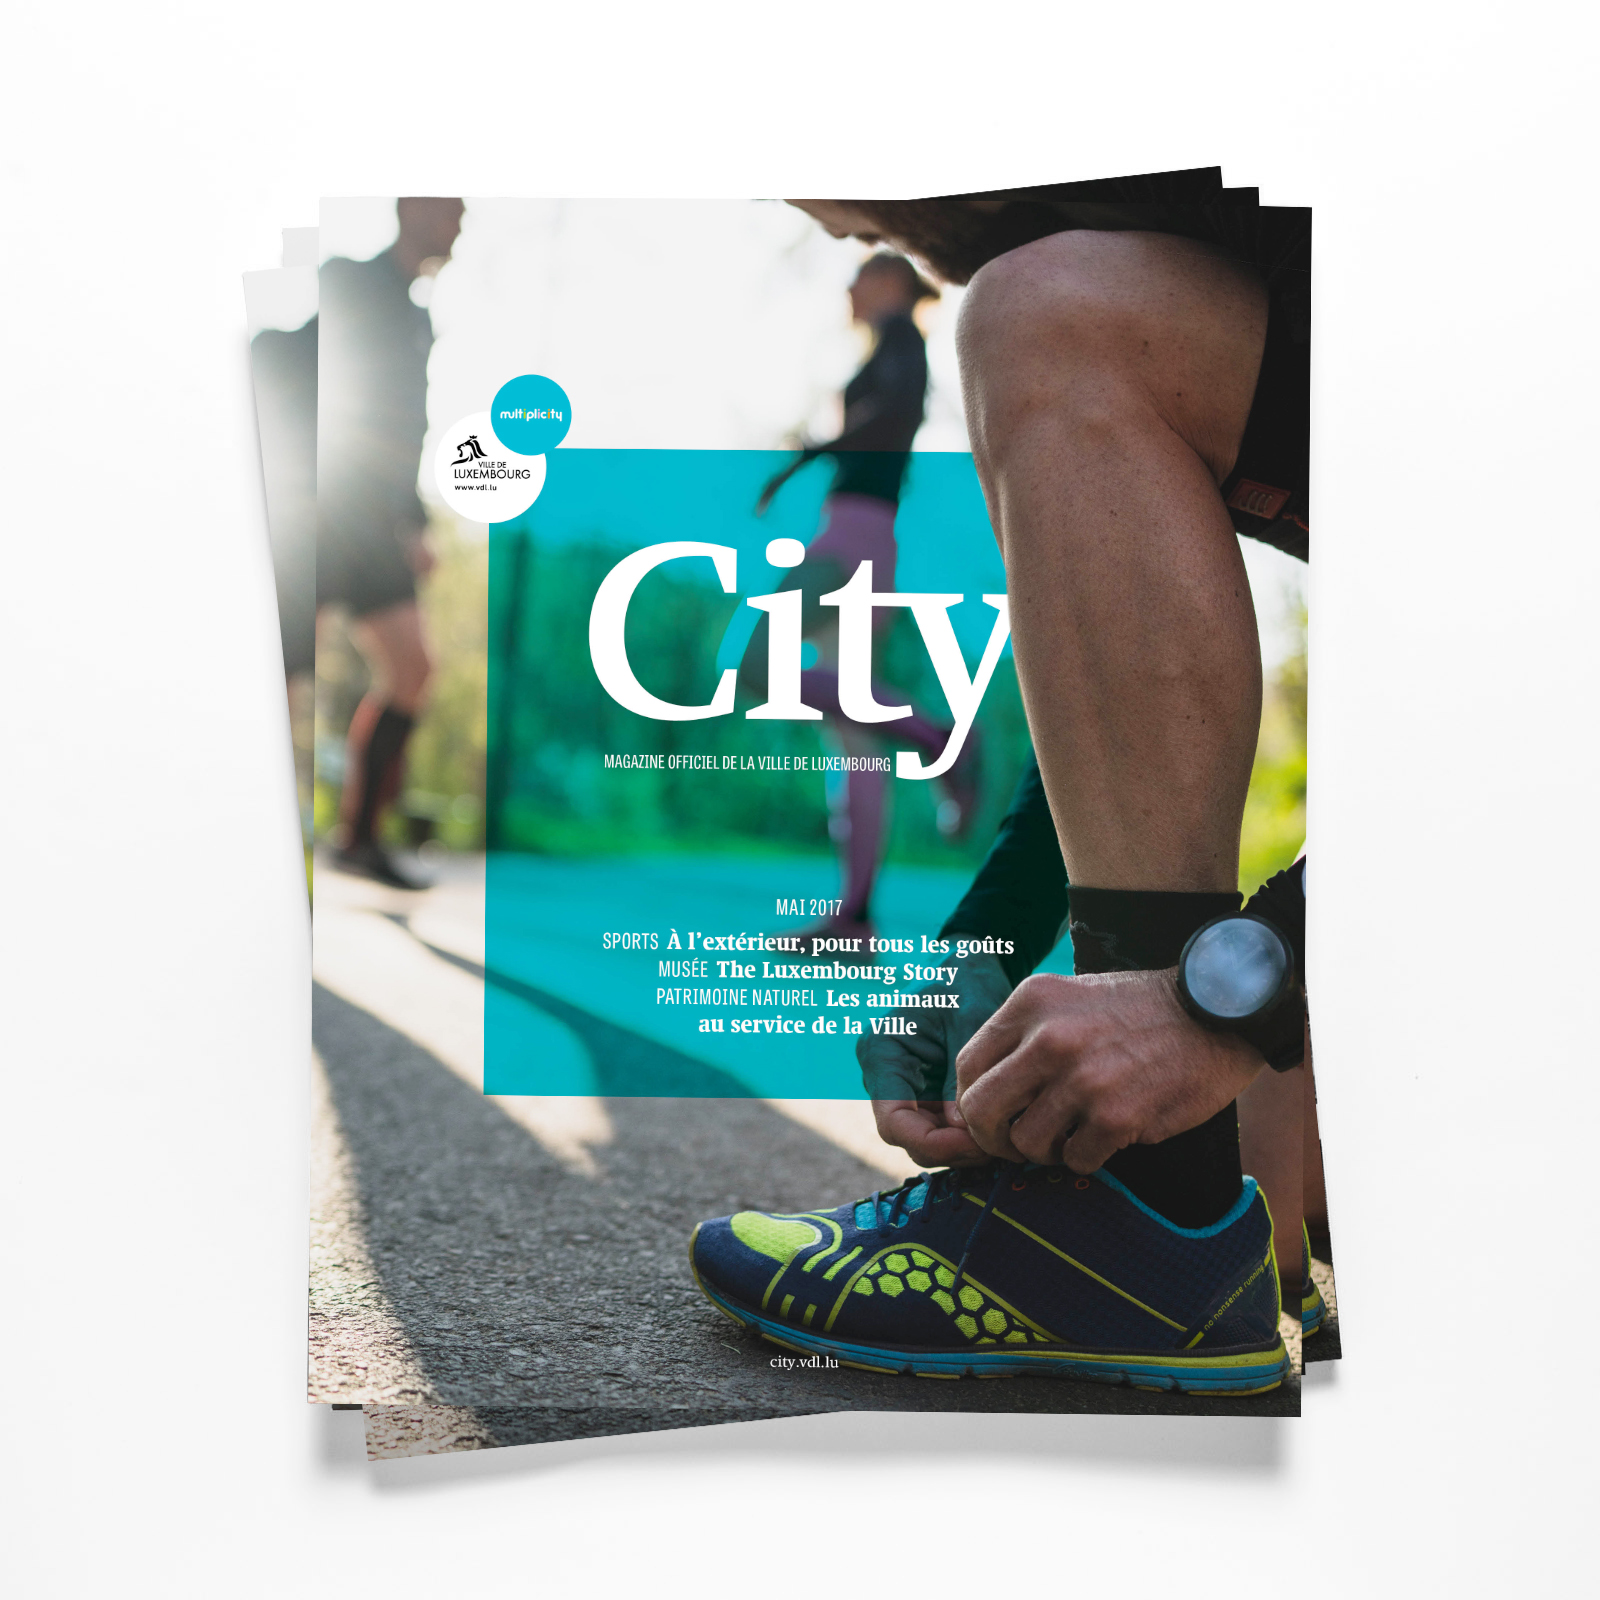 City_cover_2017_05_empile